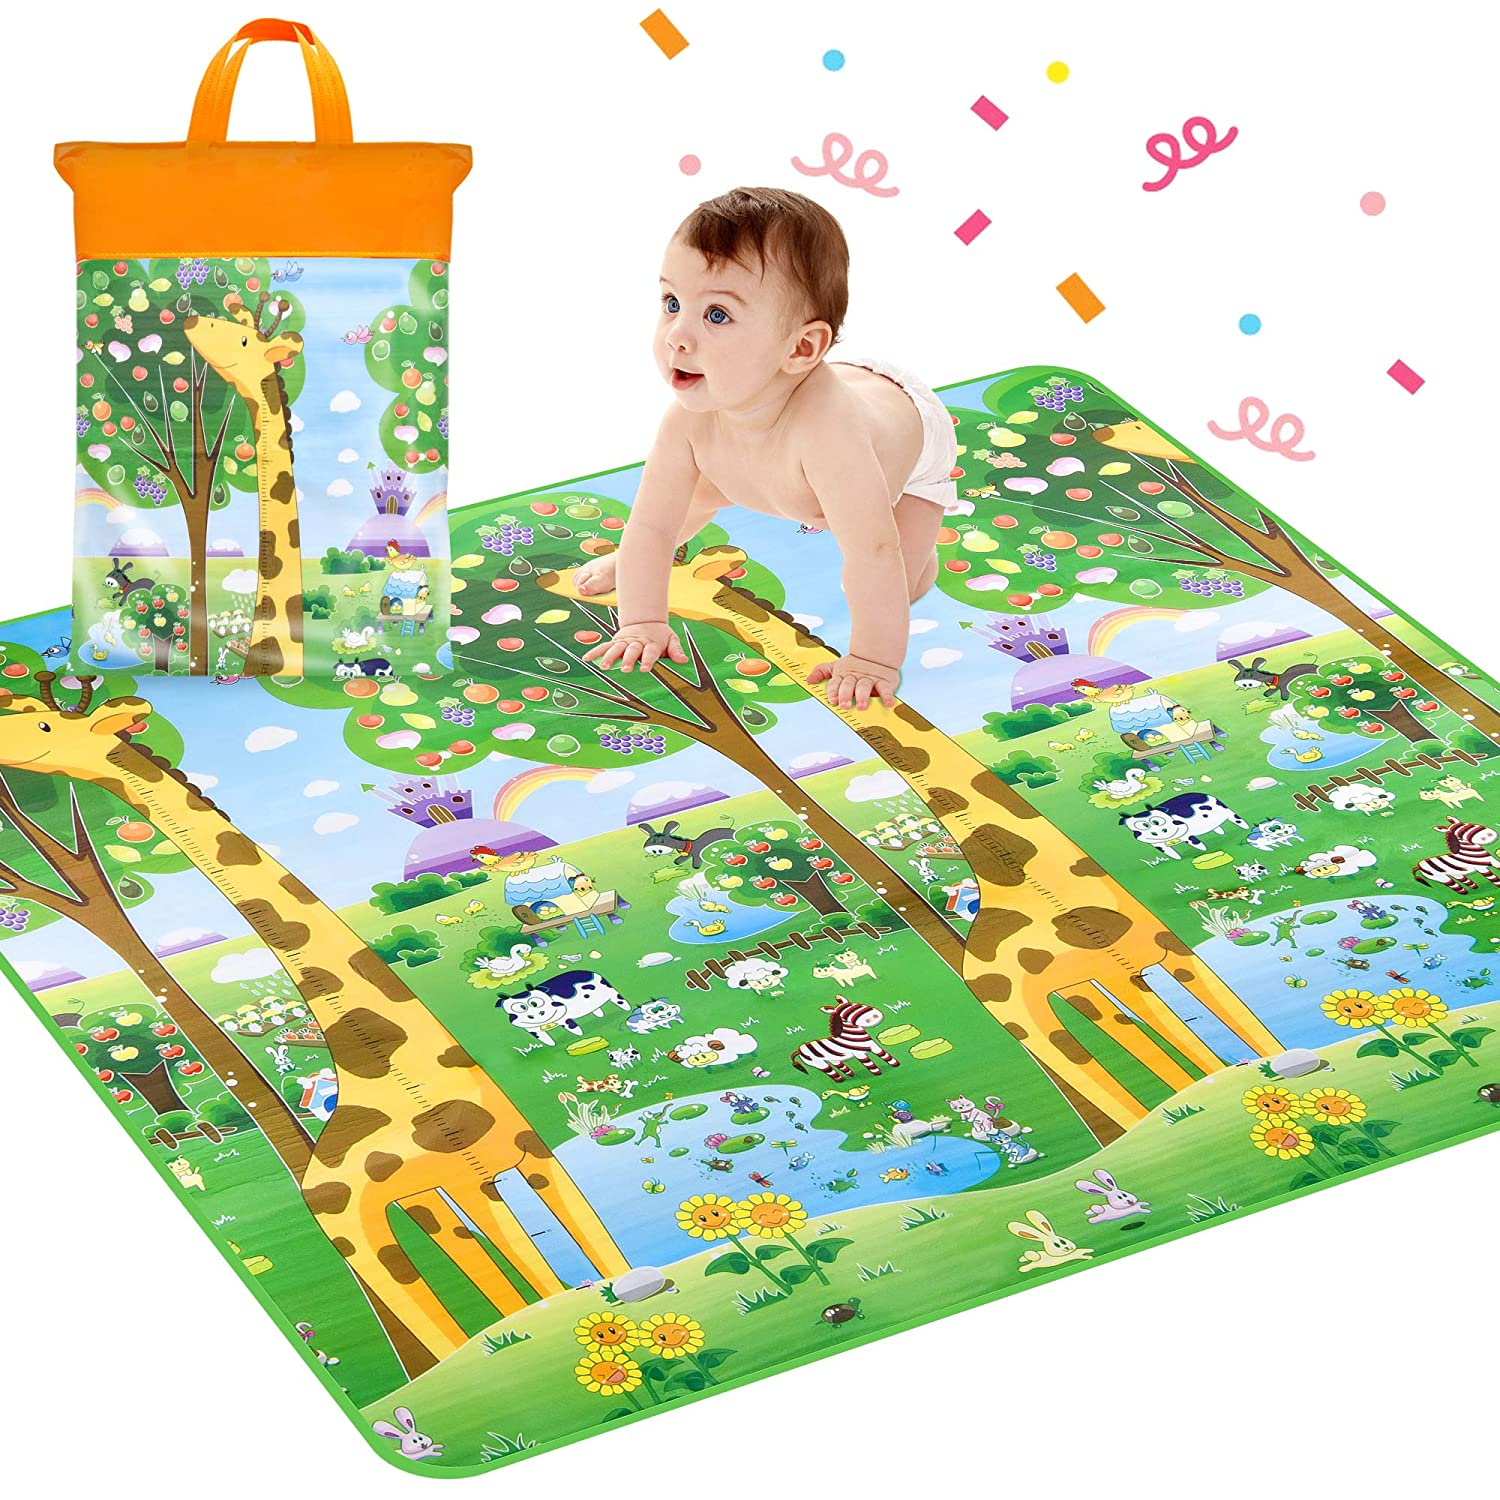 Crawling Mat, Waterproof Non-Toxic Non-Slip Baby Floor Mat Educational Learning Area Rug for Kids and Children, Kids Activity Mat Reversible Thick Large 78.7 x 71 Playmat (Animal Height Rulers) ROOYA BABY